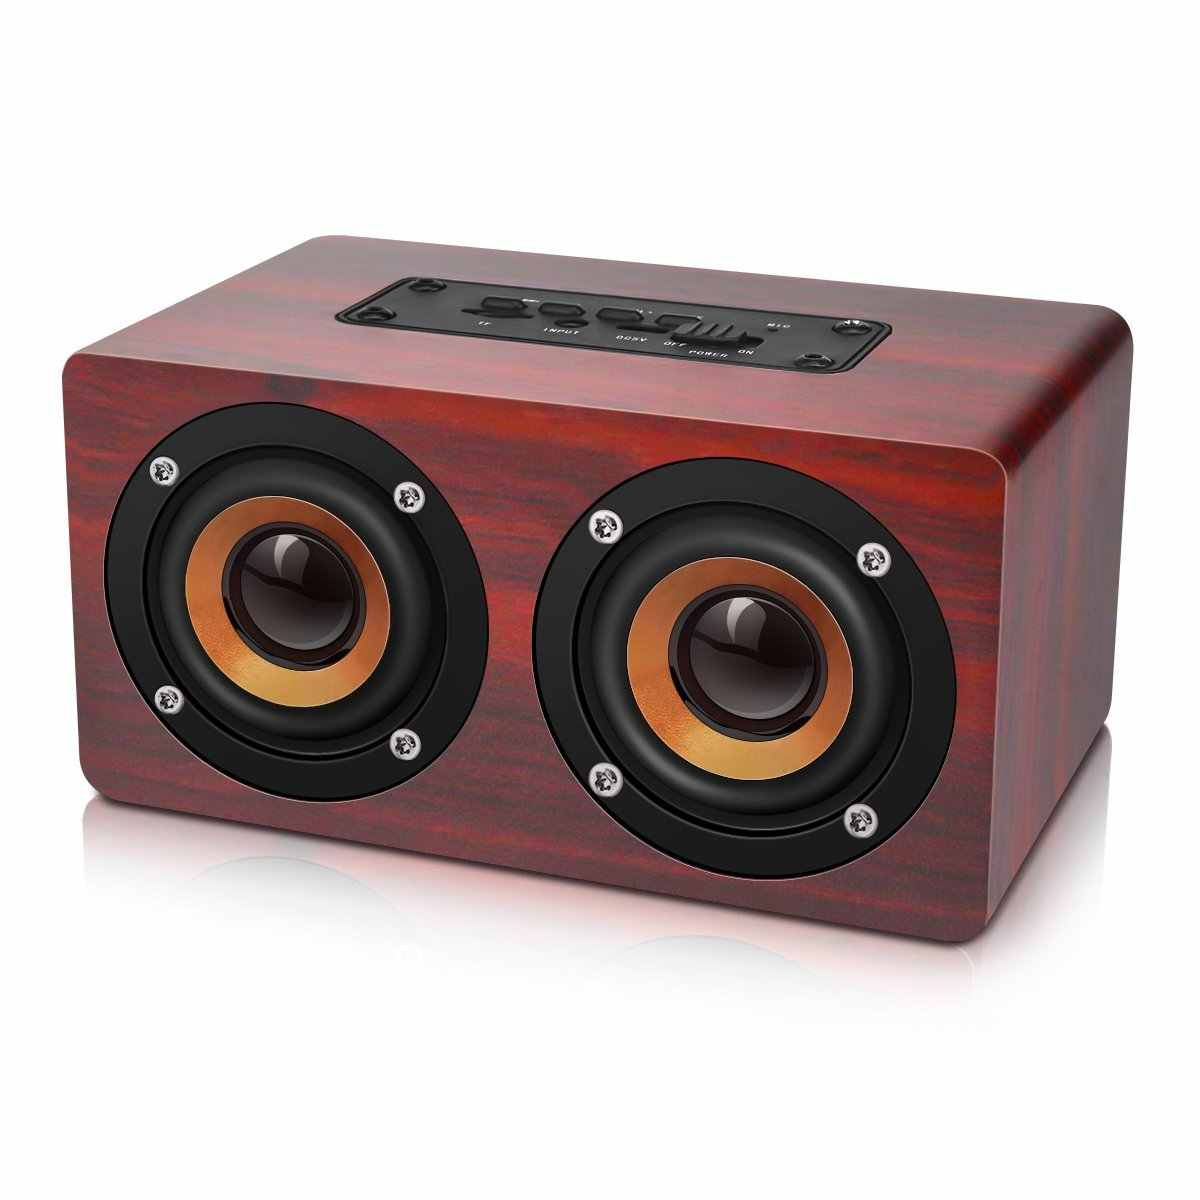 Retro Kayu Bluetooth Speaker HI FI Wireless Dual Loudspeaker 3D Surround Speaker